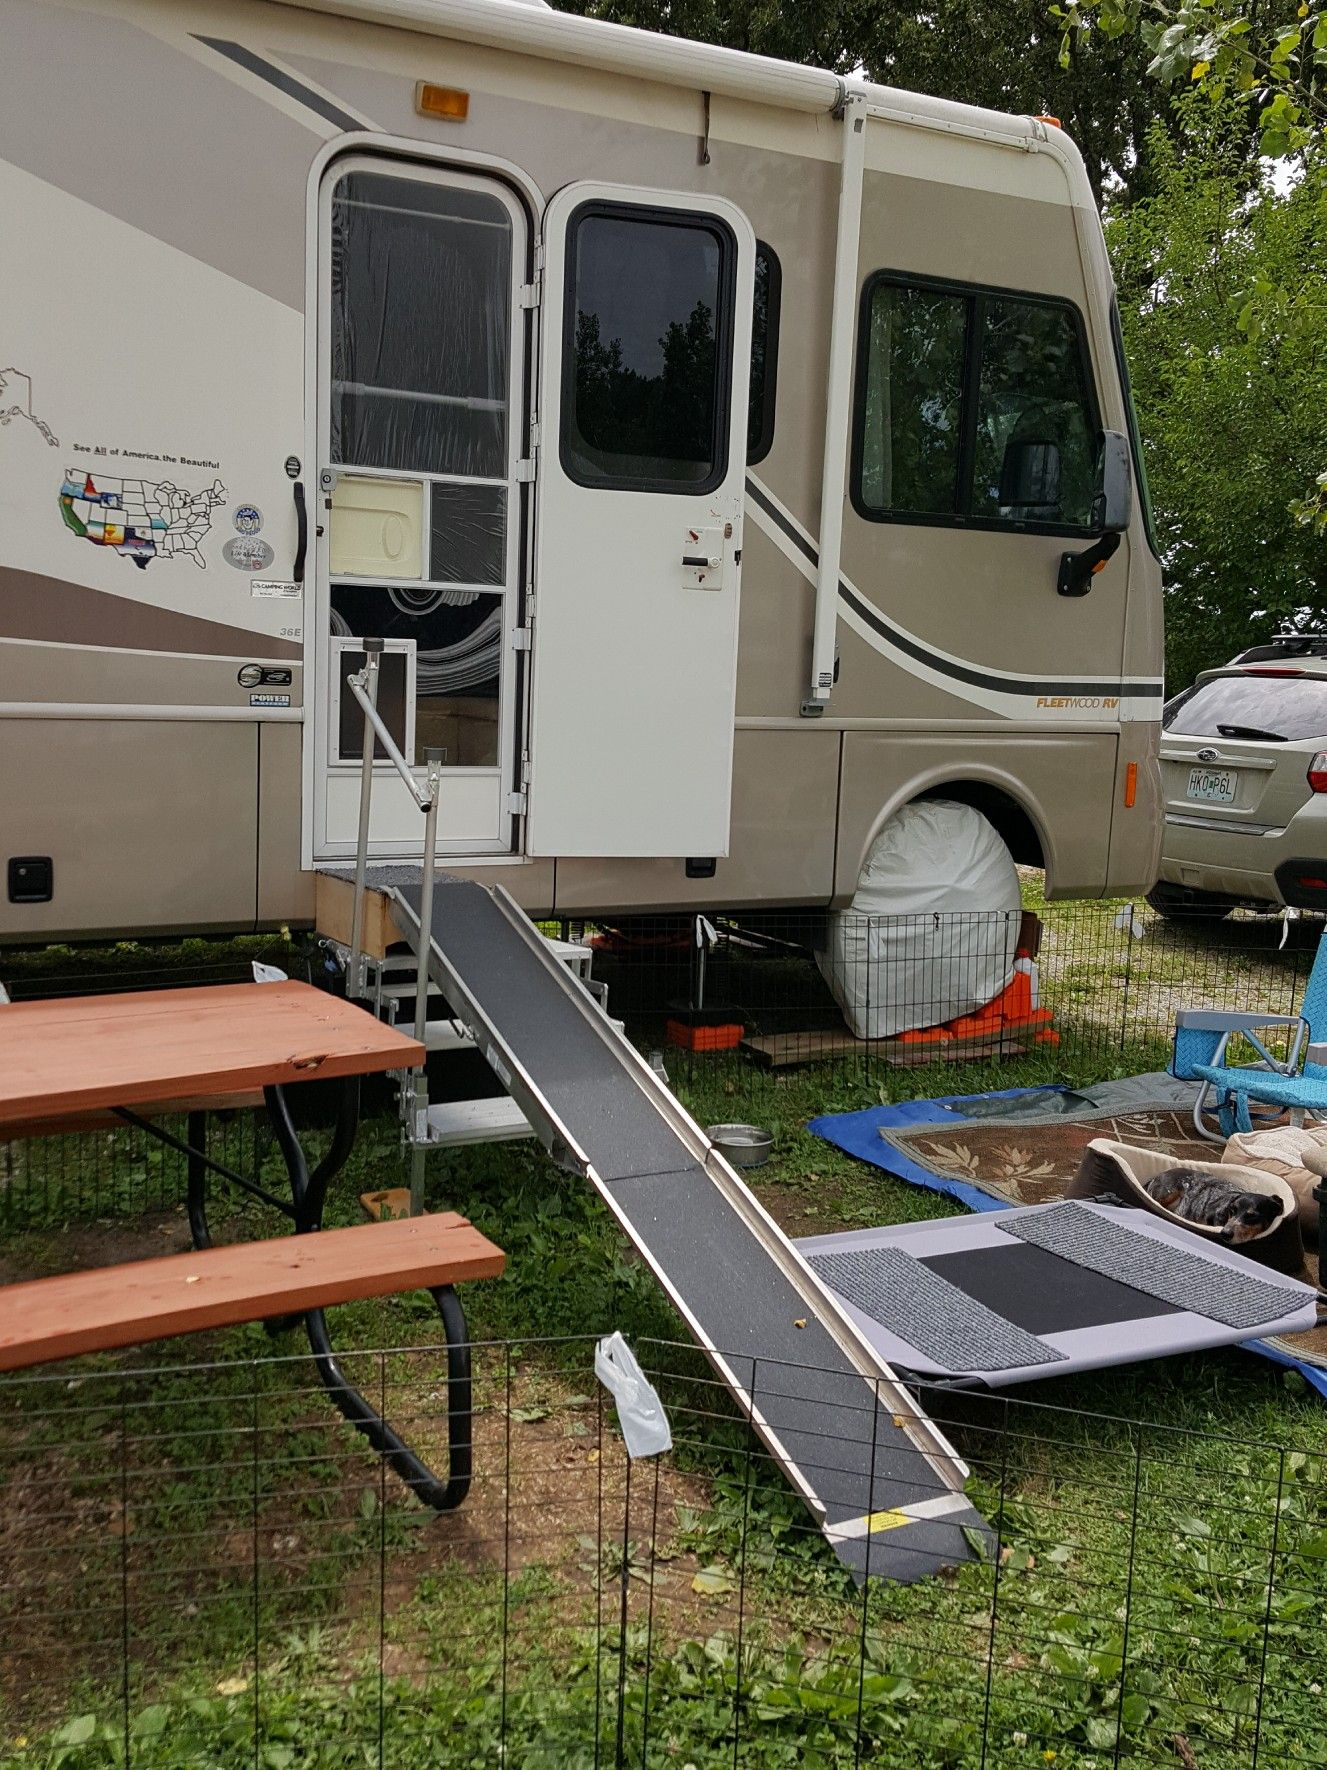 Pin By Erika Backes On Campers Rv Exterior Camper Living Travel Trailer Camping